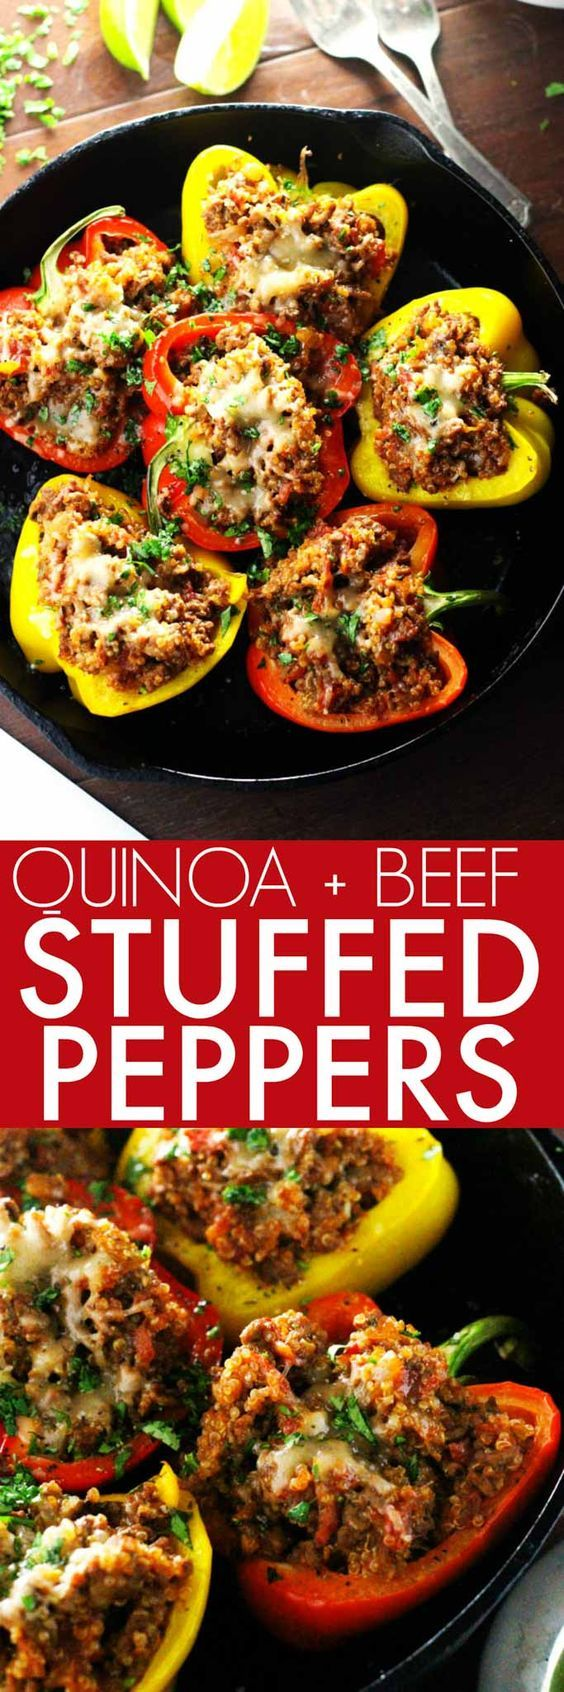 These Southwest Beef & Quinoa Stuffed Peppers make a hearty, healthy, protein packed meal that's amazingly delicious and quick and easy to prepare. | platingsandpairings.com